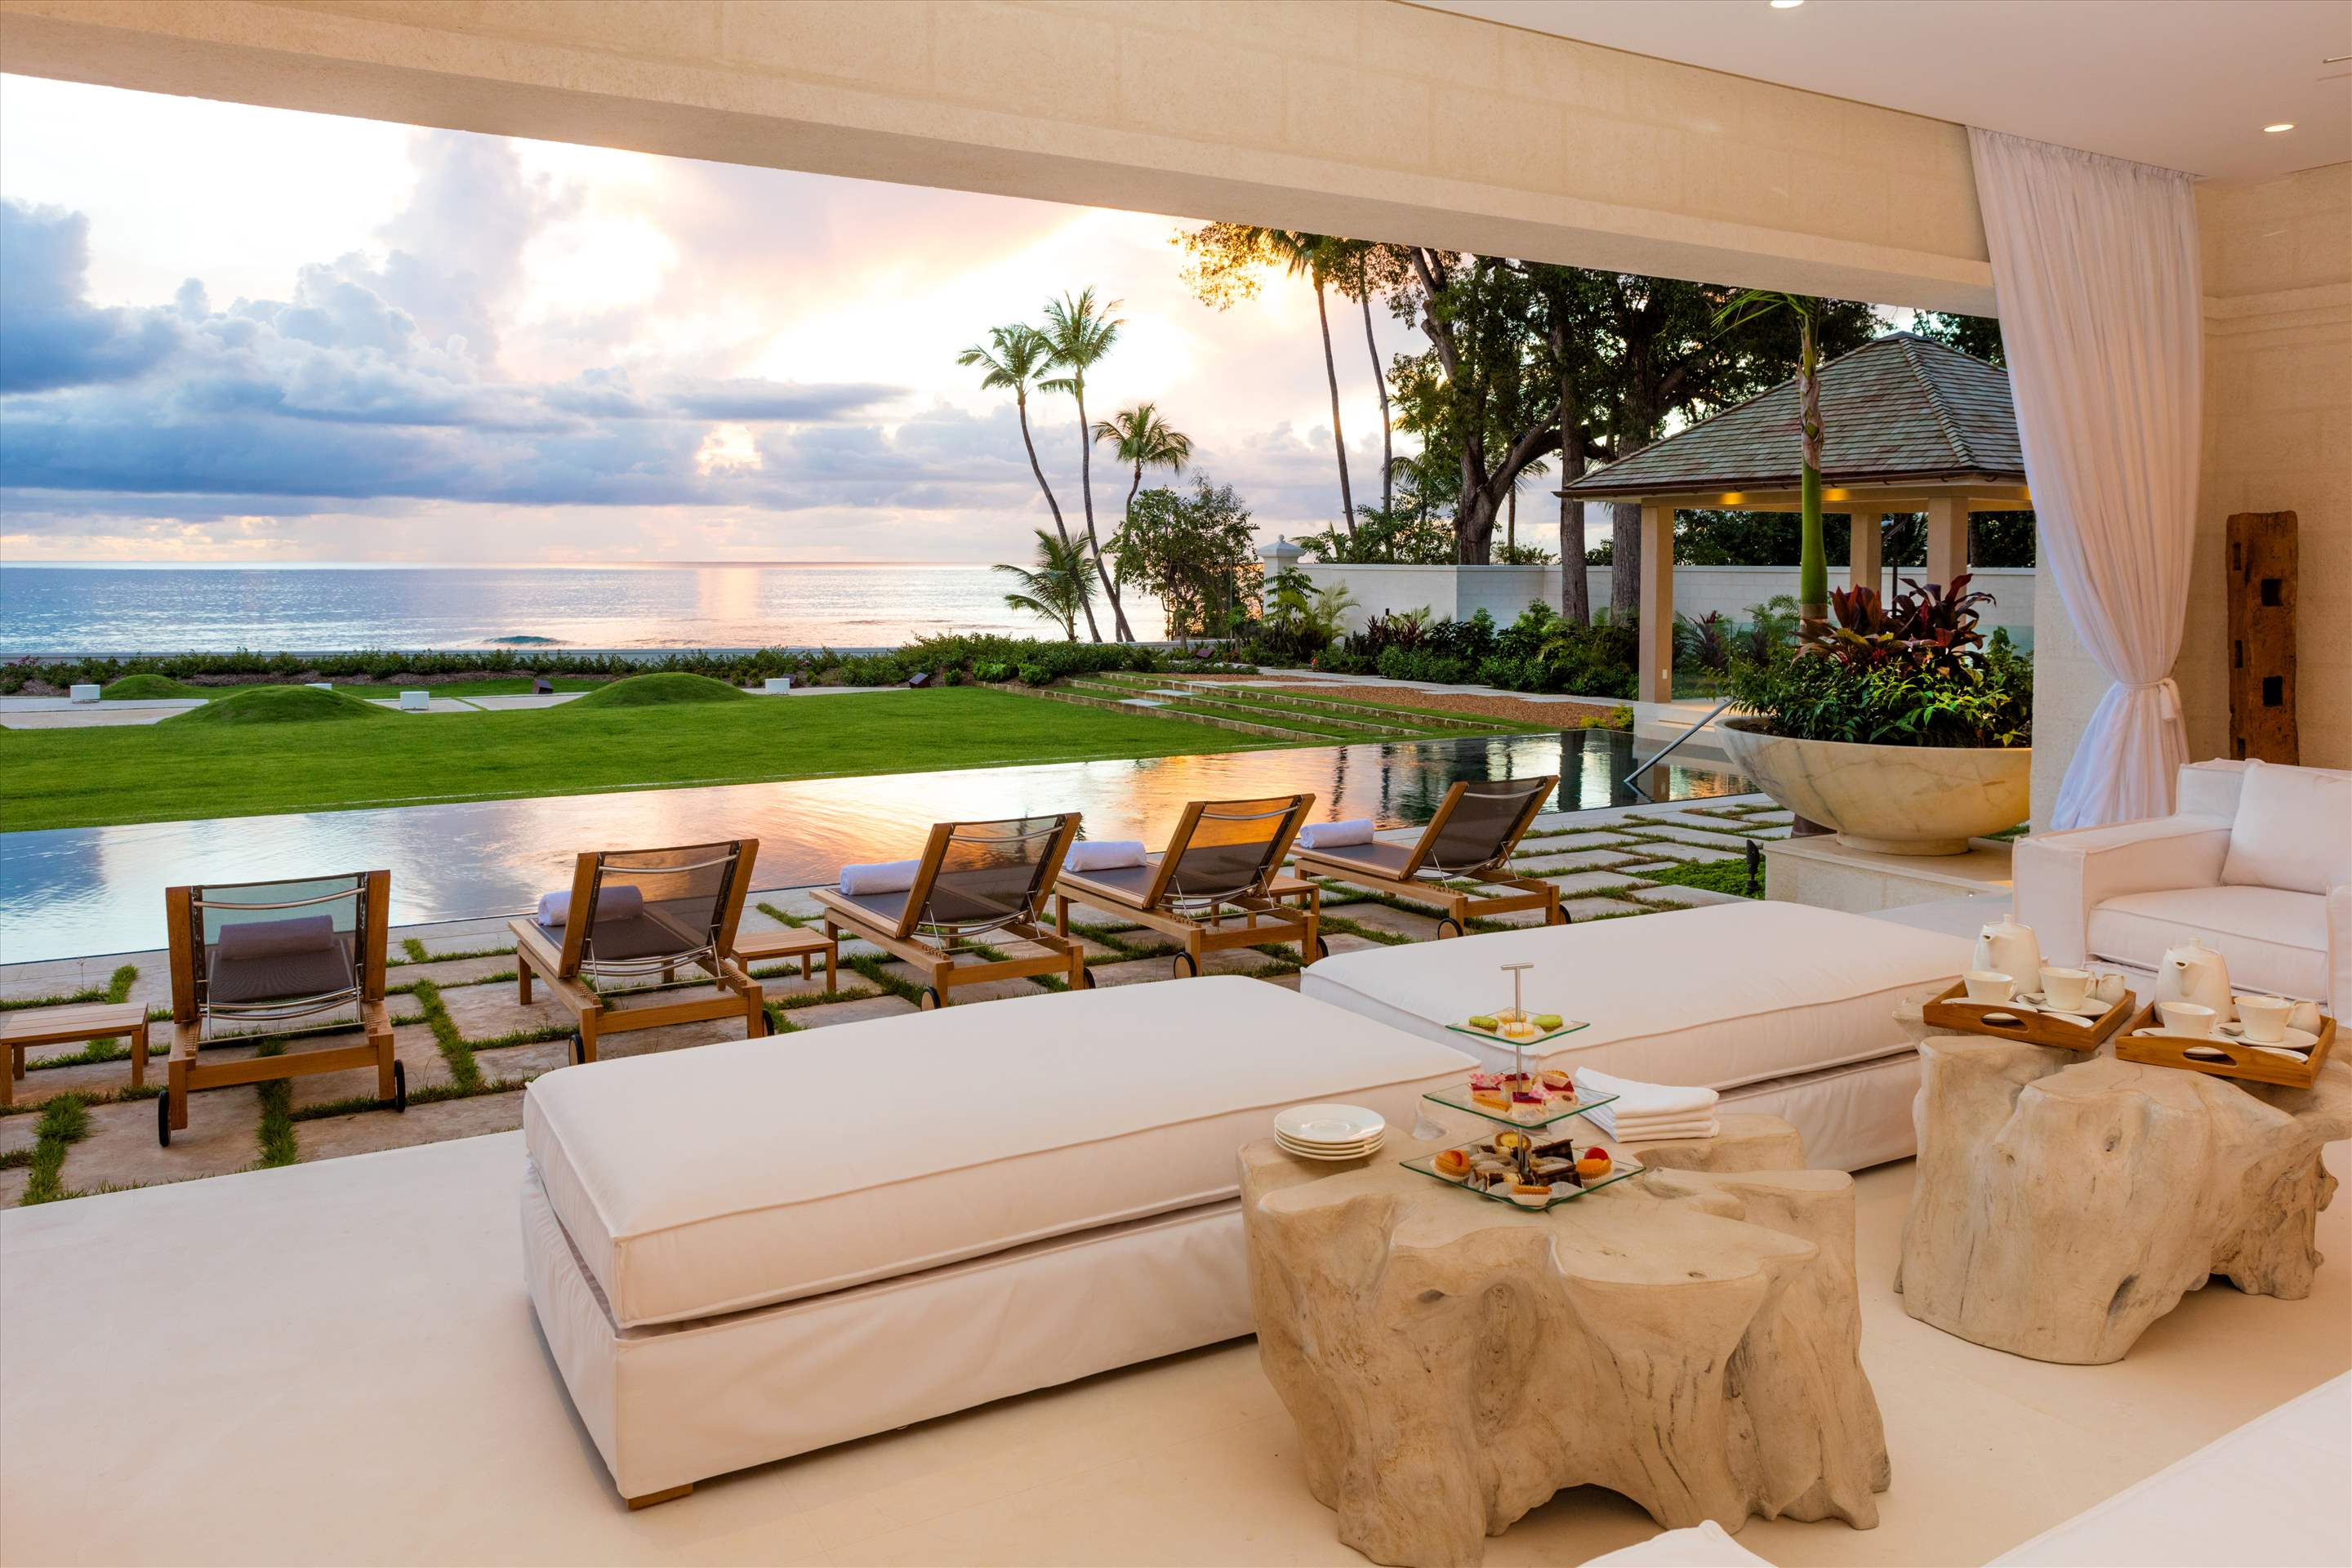 Godings Beach House, 5 bedroom villa in St. James & West Coast, Barbados Photo #14